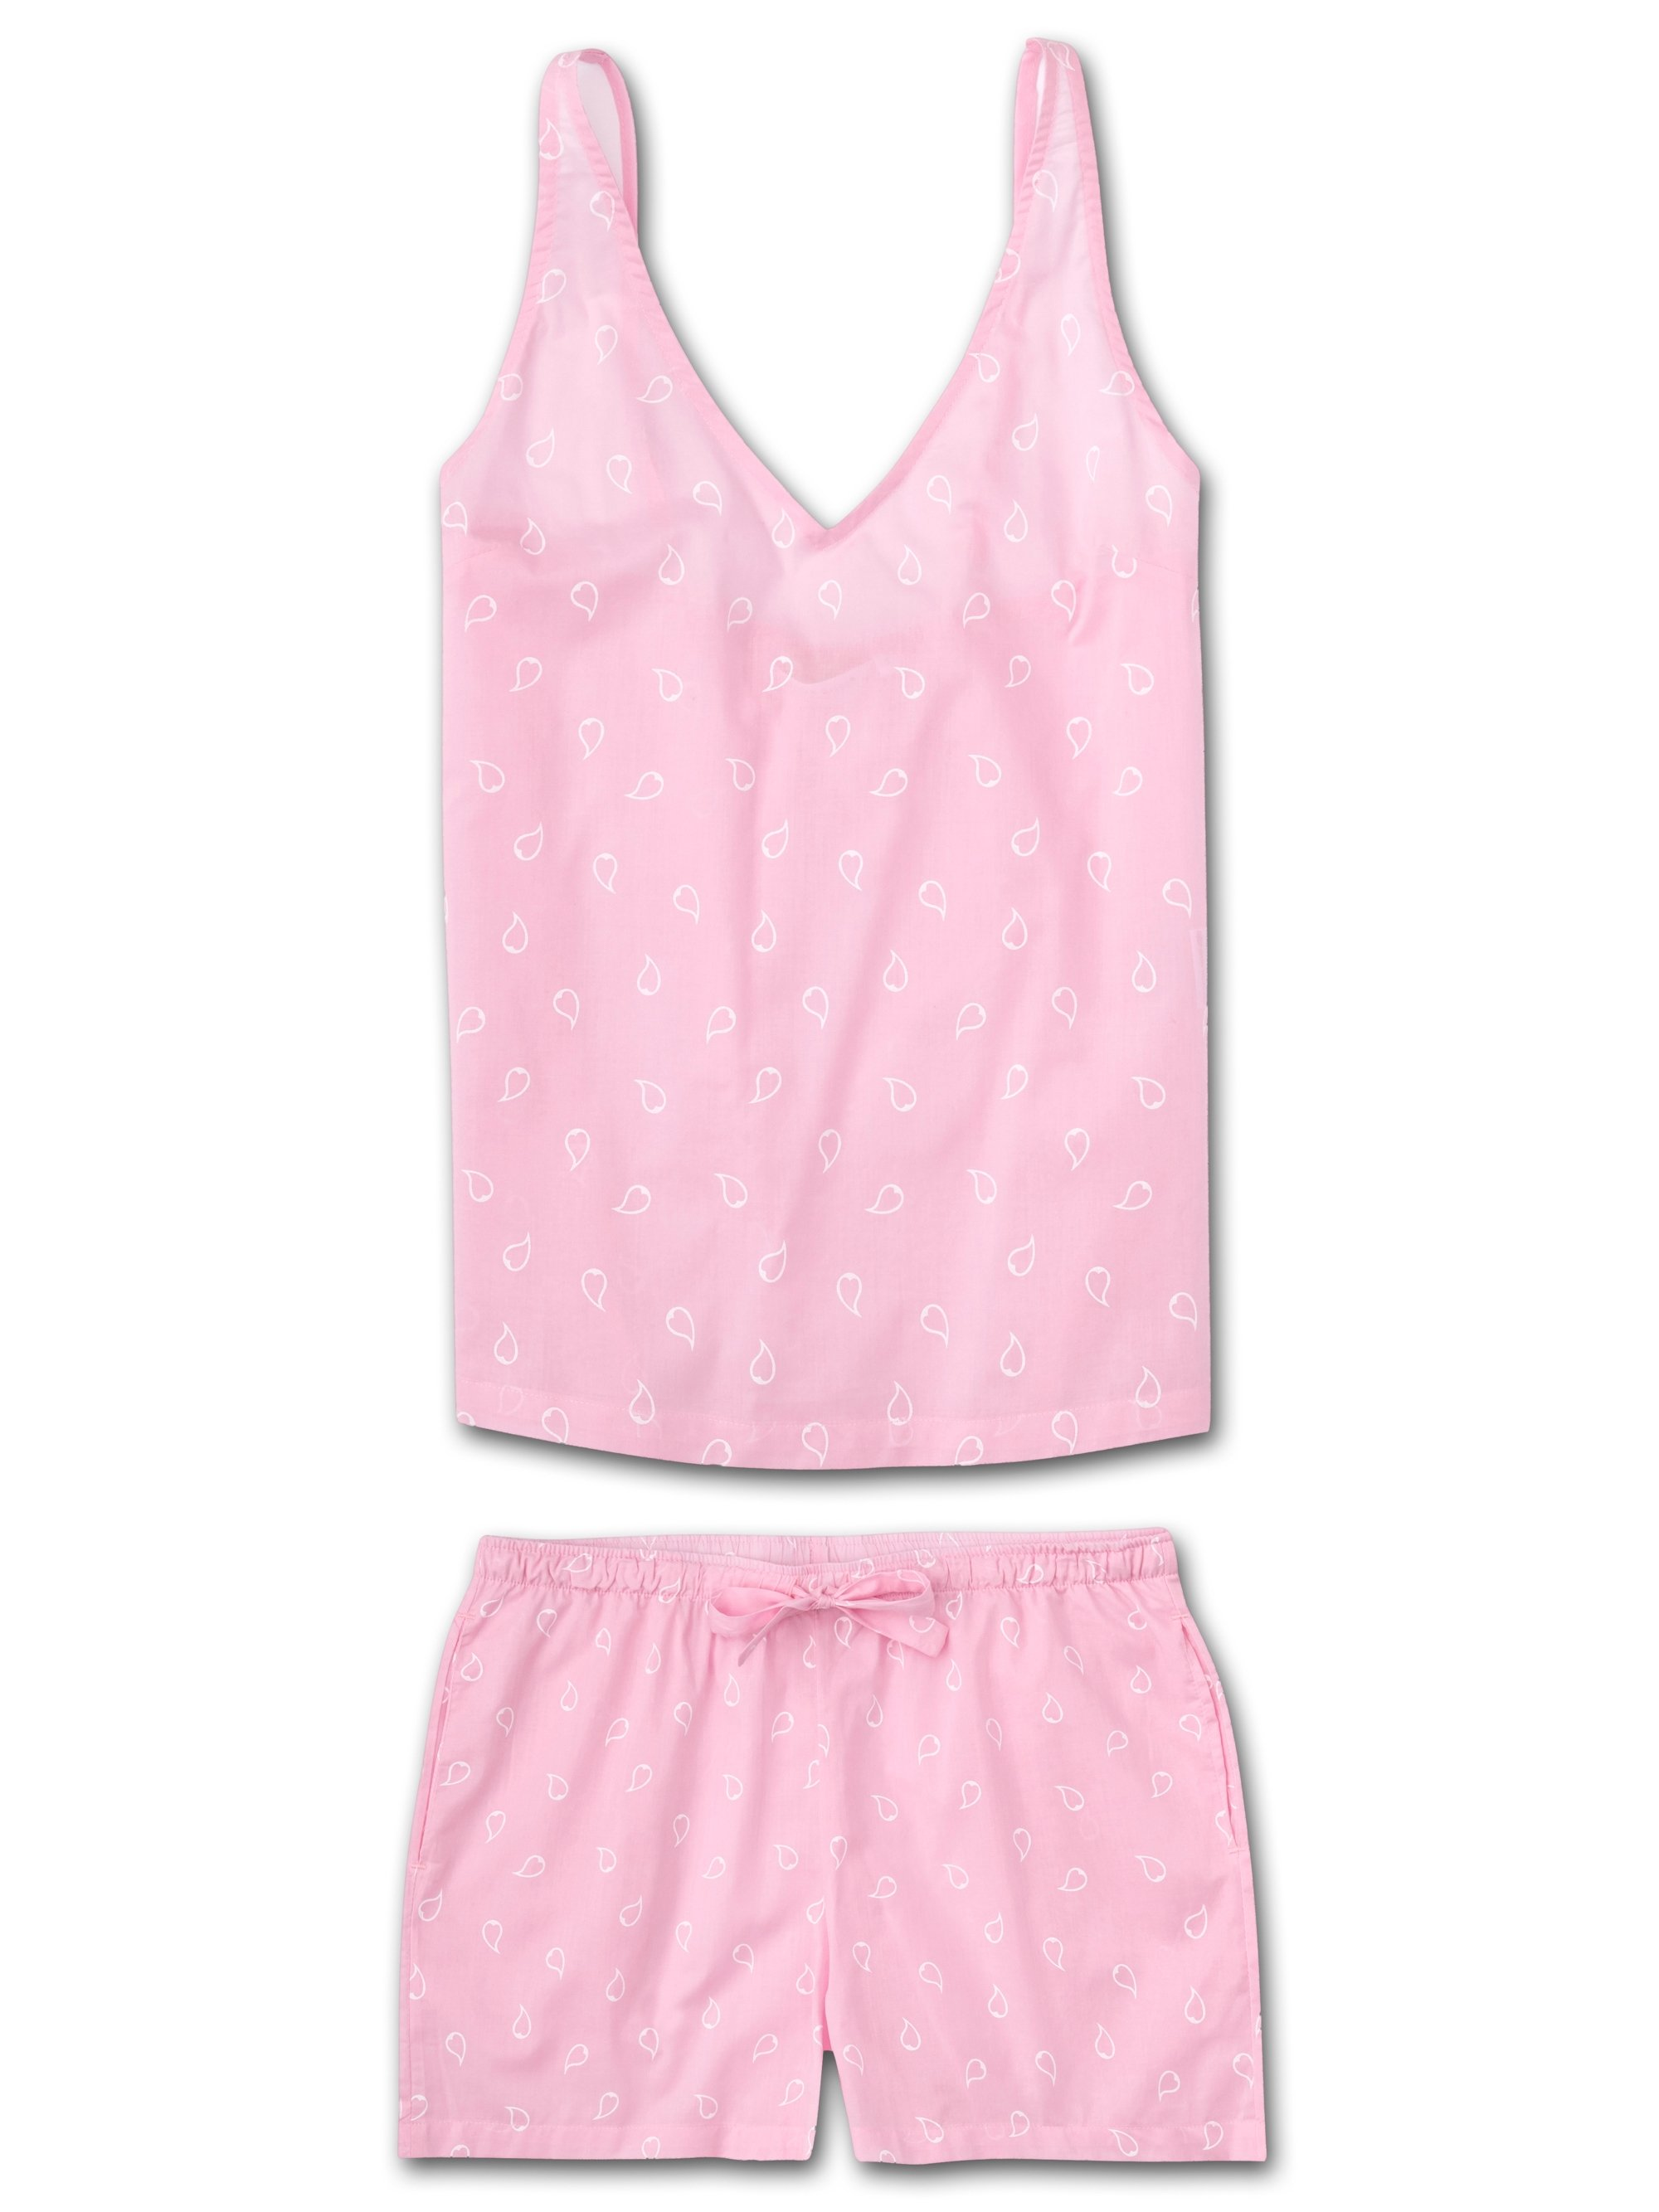 Women's Cami Short Pyjama Set Nelson 74 Cotton Batiste Pink